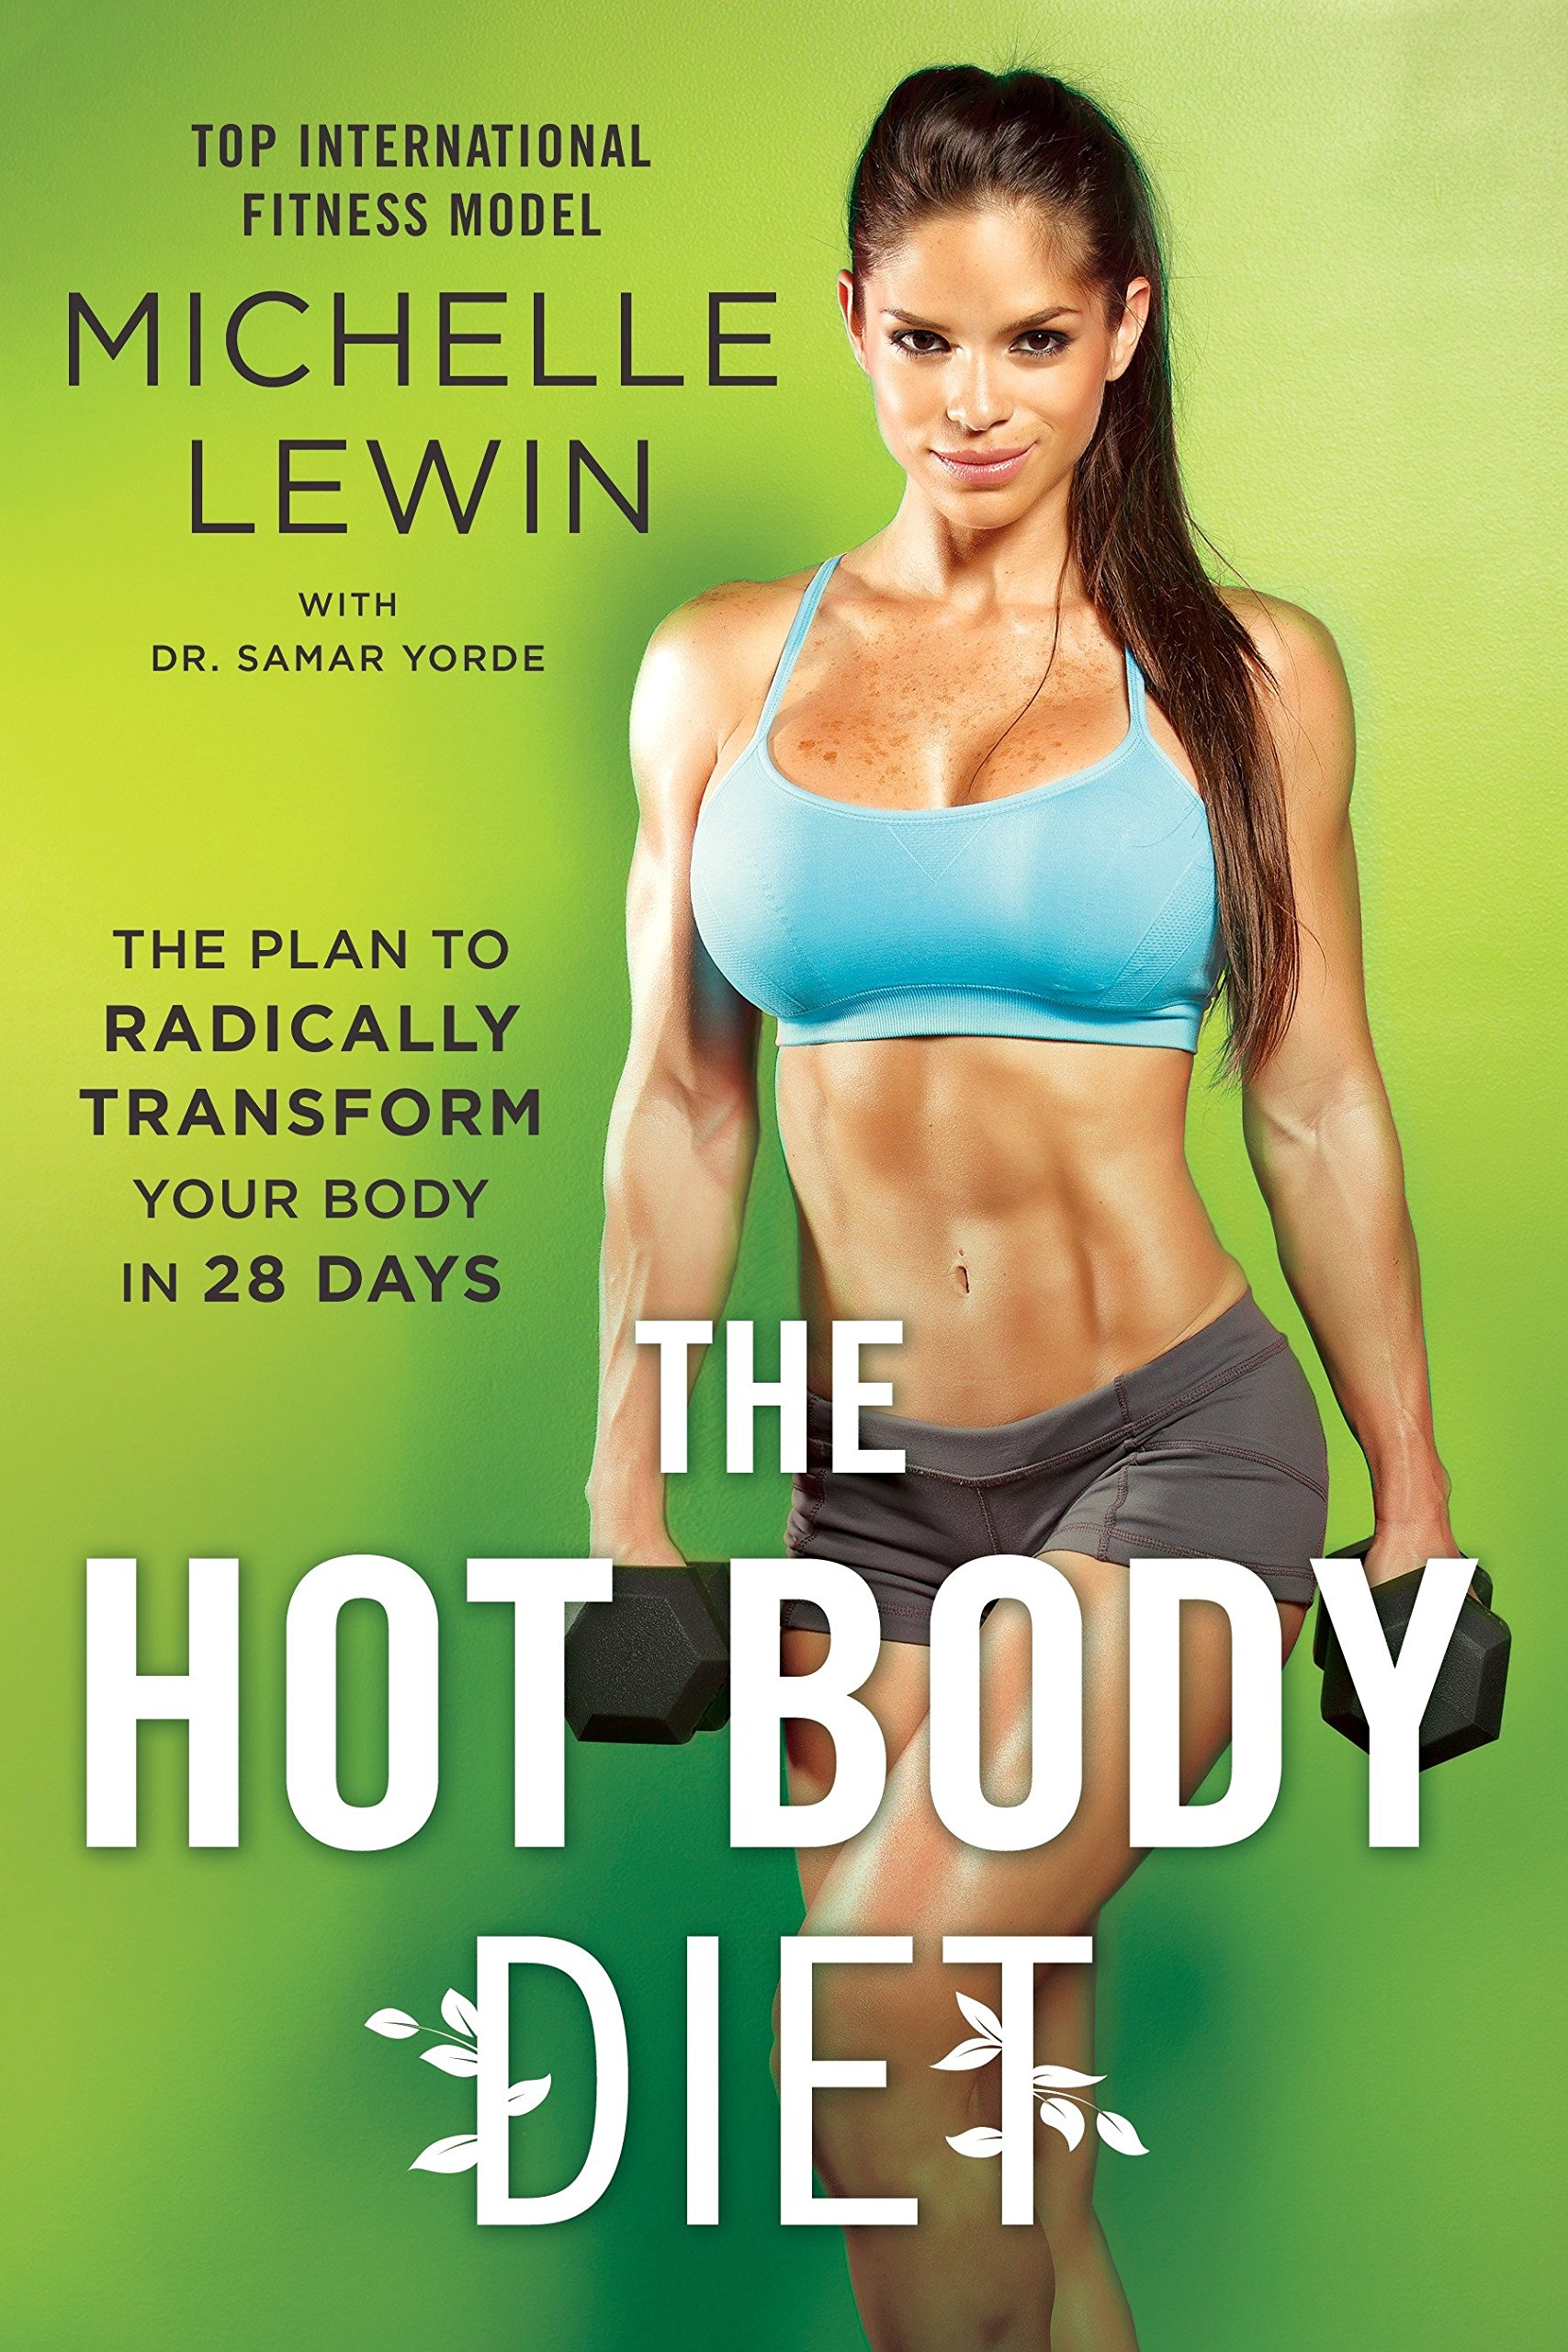 920d01f3d30d5c The Hot Body Diet: The Plan to Radically Transform Your Body in 28 Days  Paperback – June 5, 2018. by Michelle Lewin ...